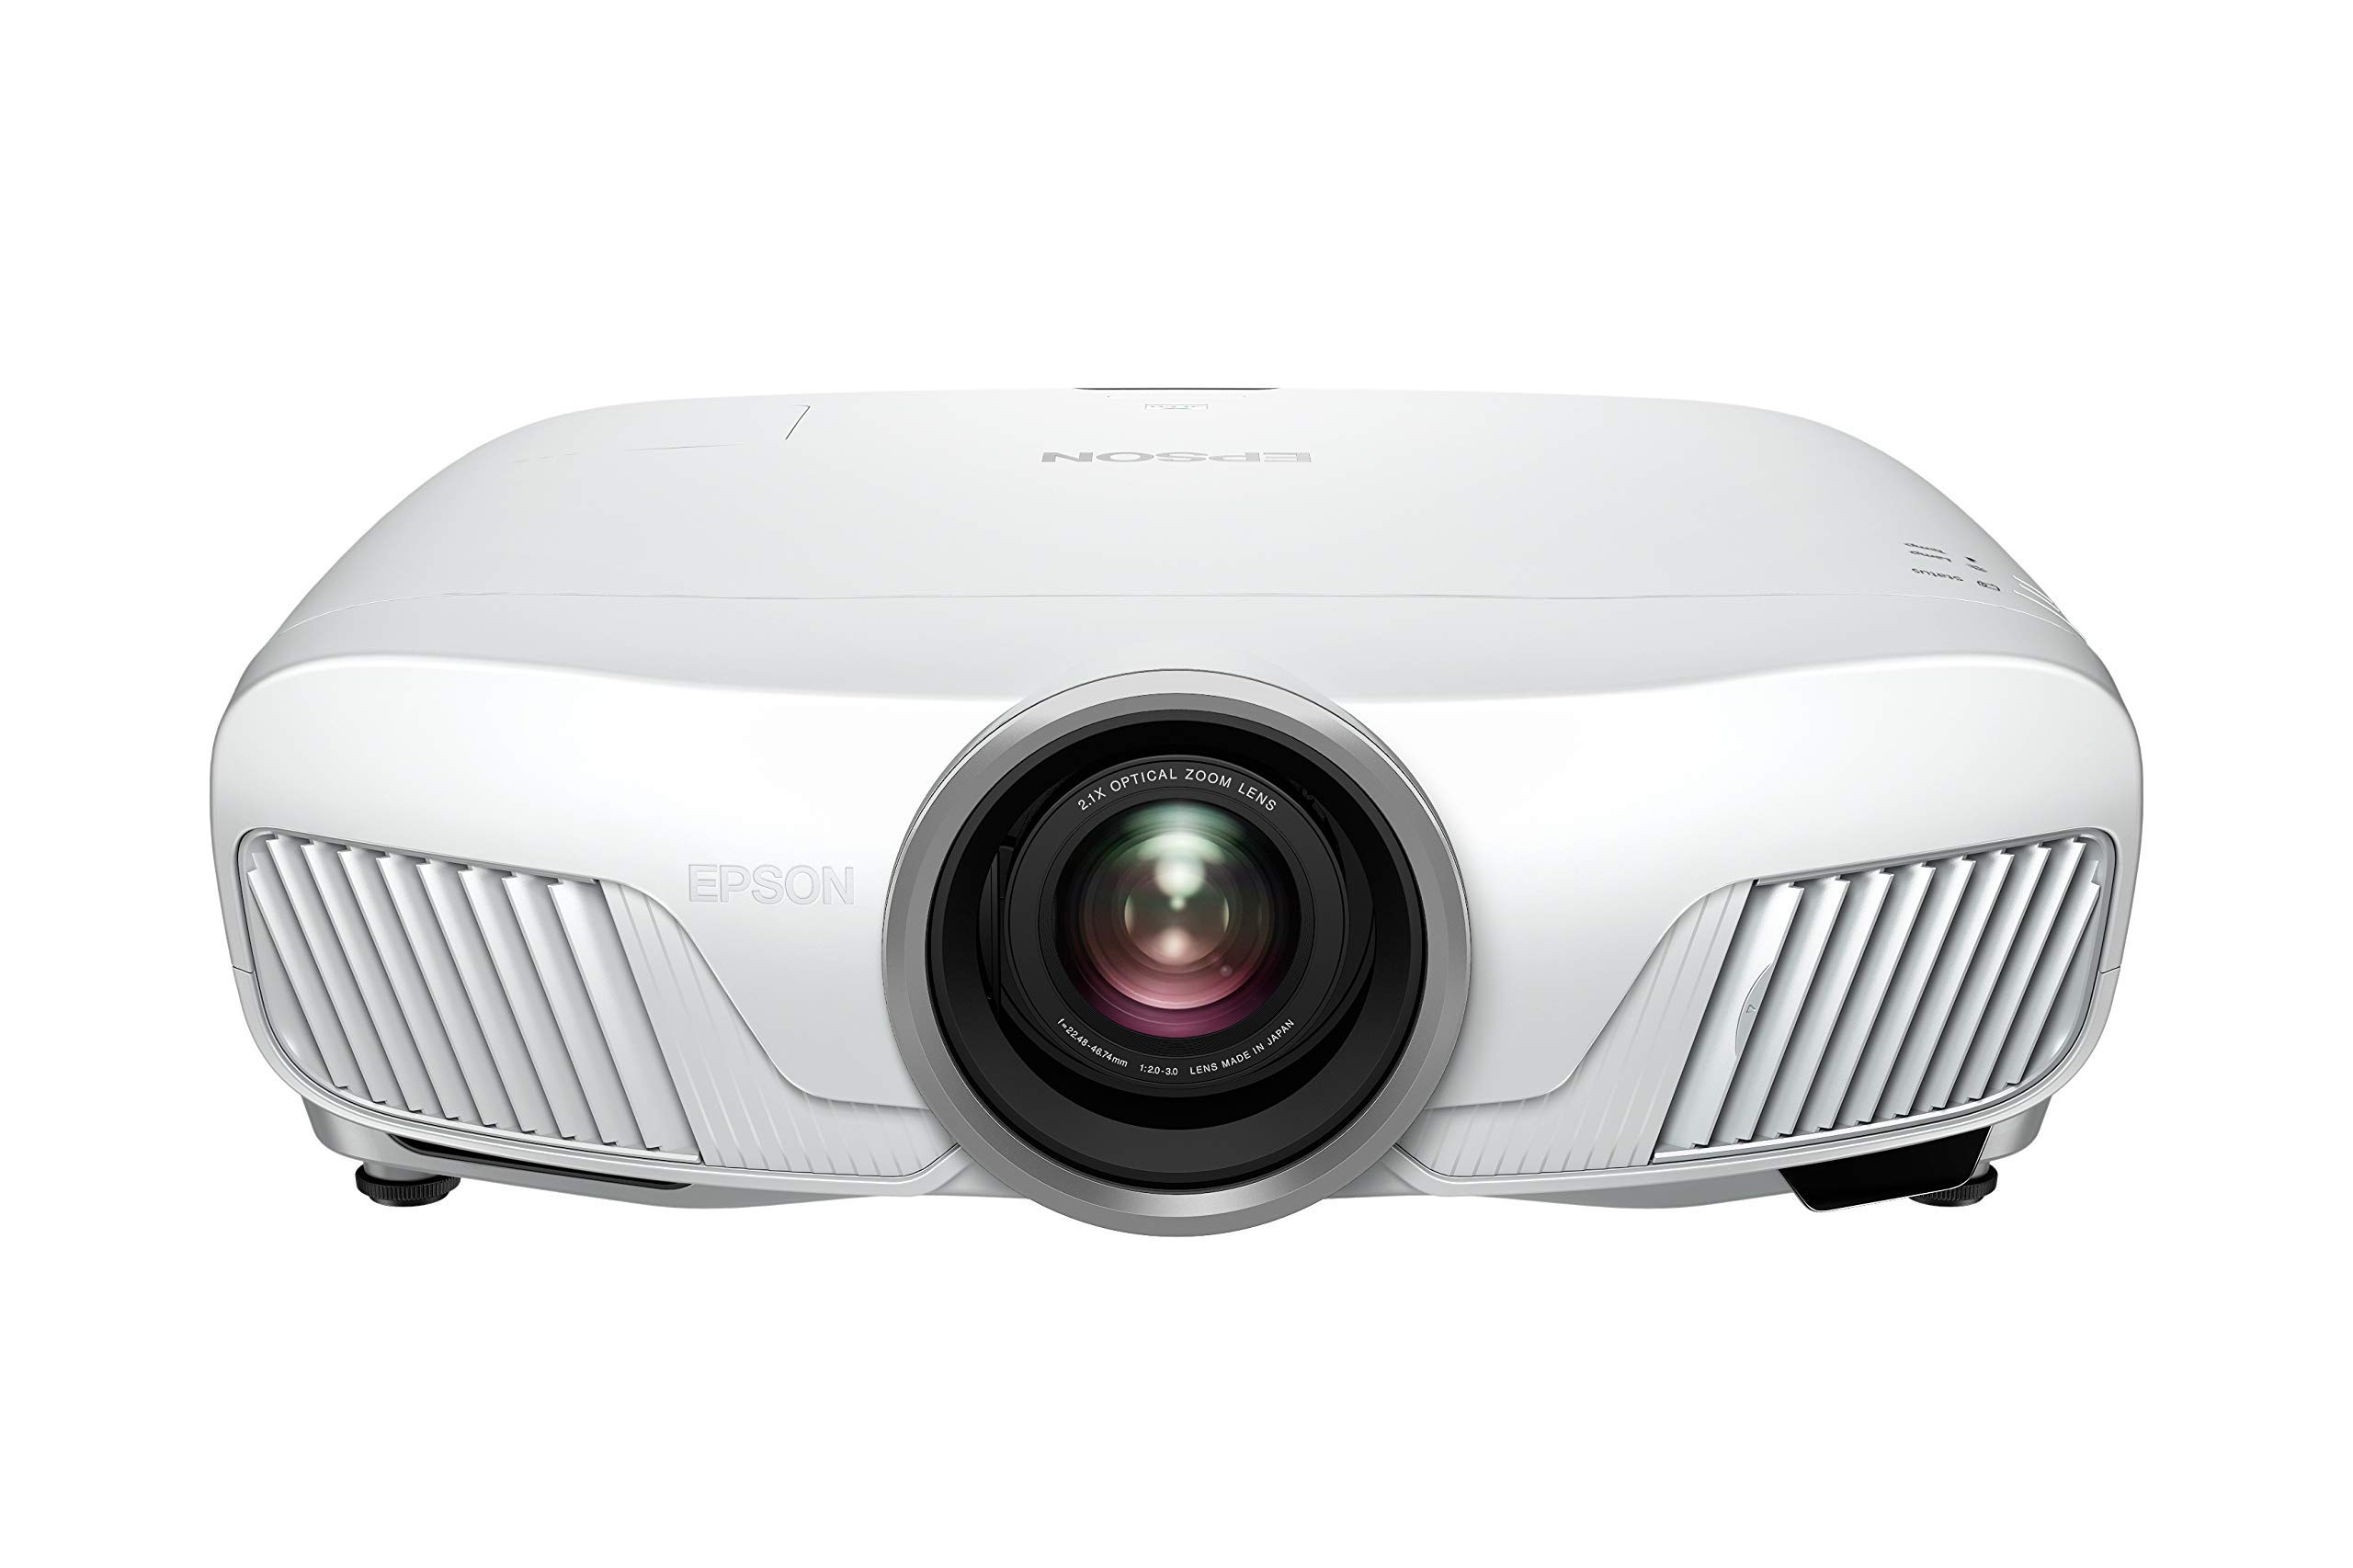 71BTKzR5kuL - Epson EH-TW7400 3LCD, 4K Pro UHD Super Resolution, 2400 Lumens, 300 Inch Display, Motorised Optics, Home Cinema Projector - White